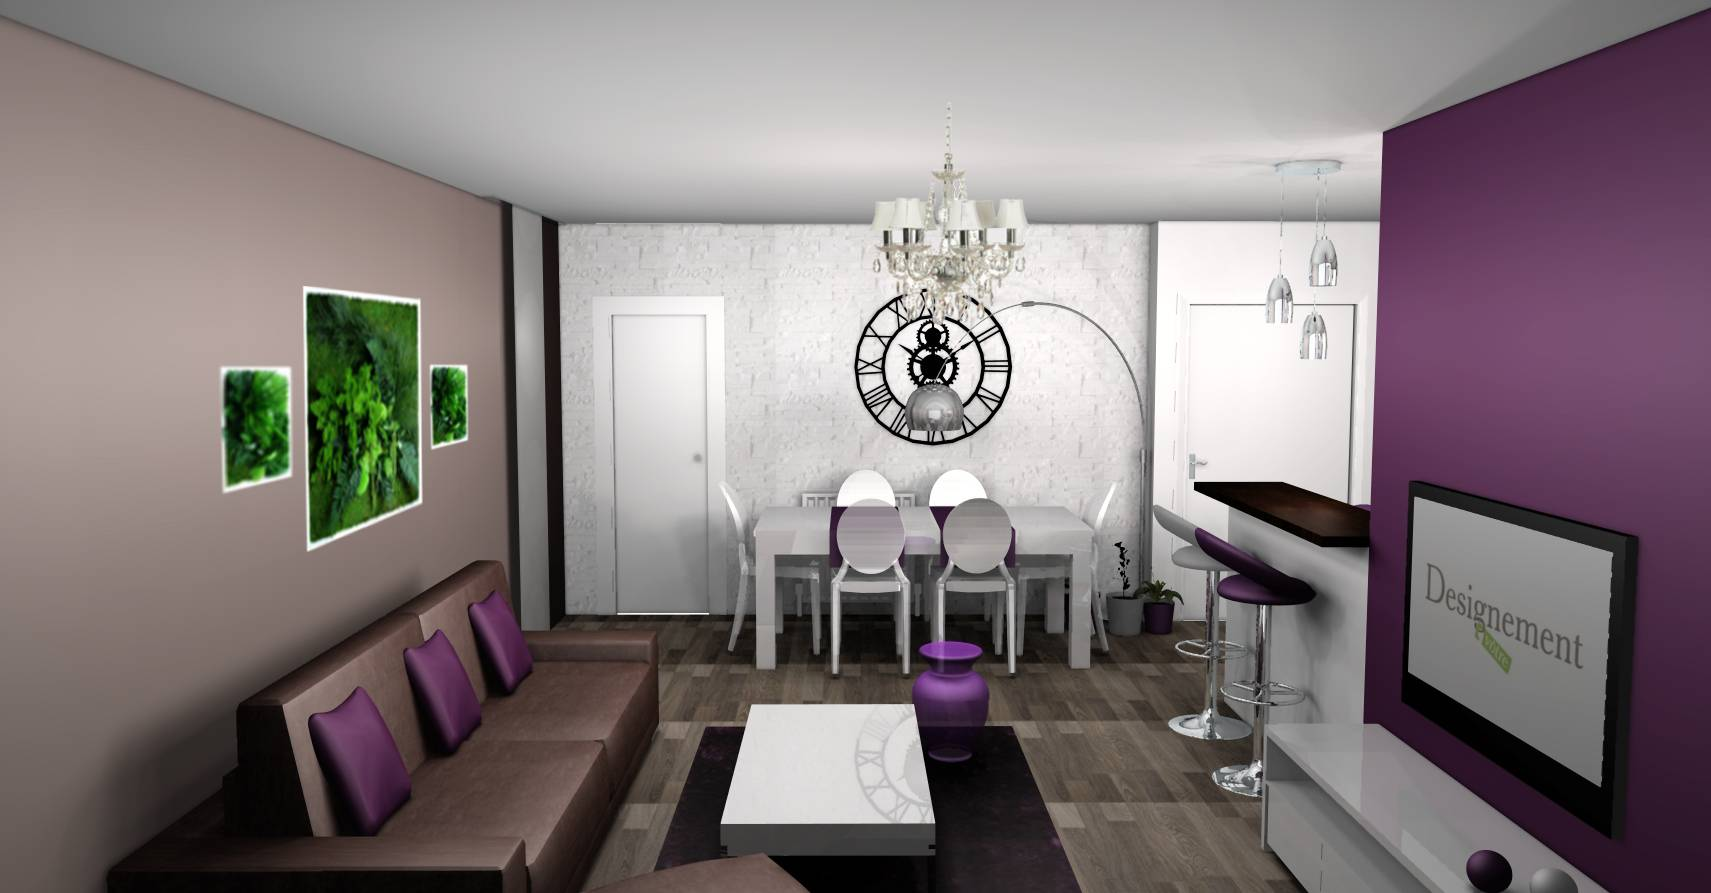 Deco salon noir blanc violet for Deco salon violet et gris